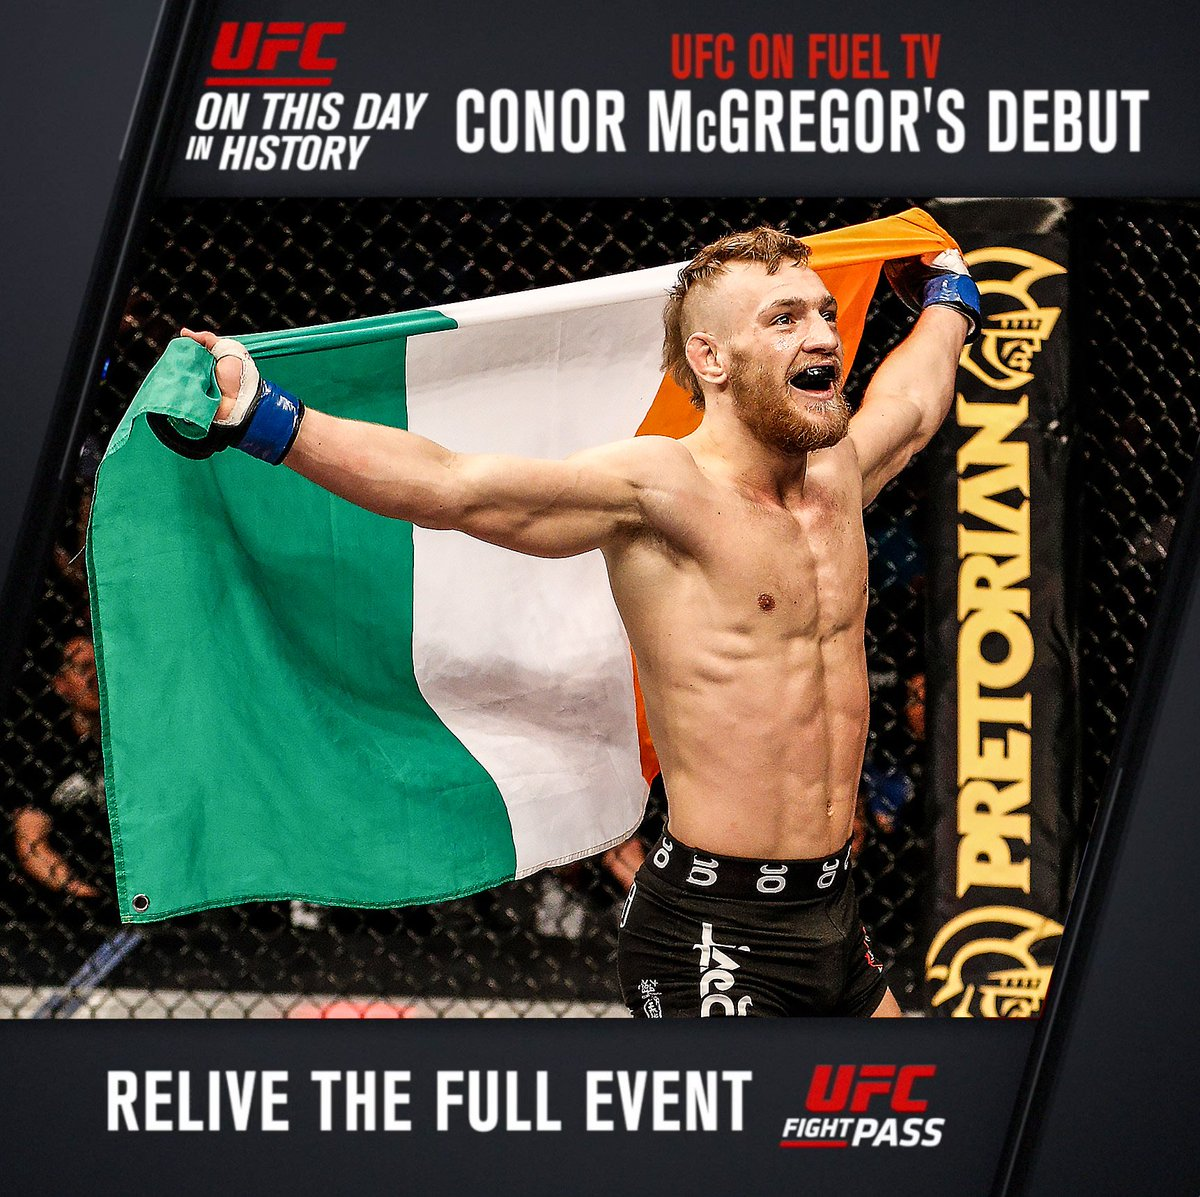 #OnThisDay in 2013: @TheNotoriousMMA made his debut! The rest is history...